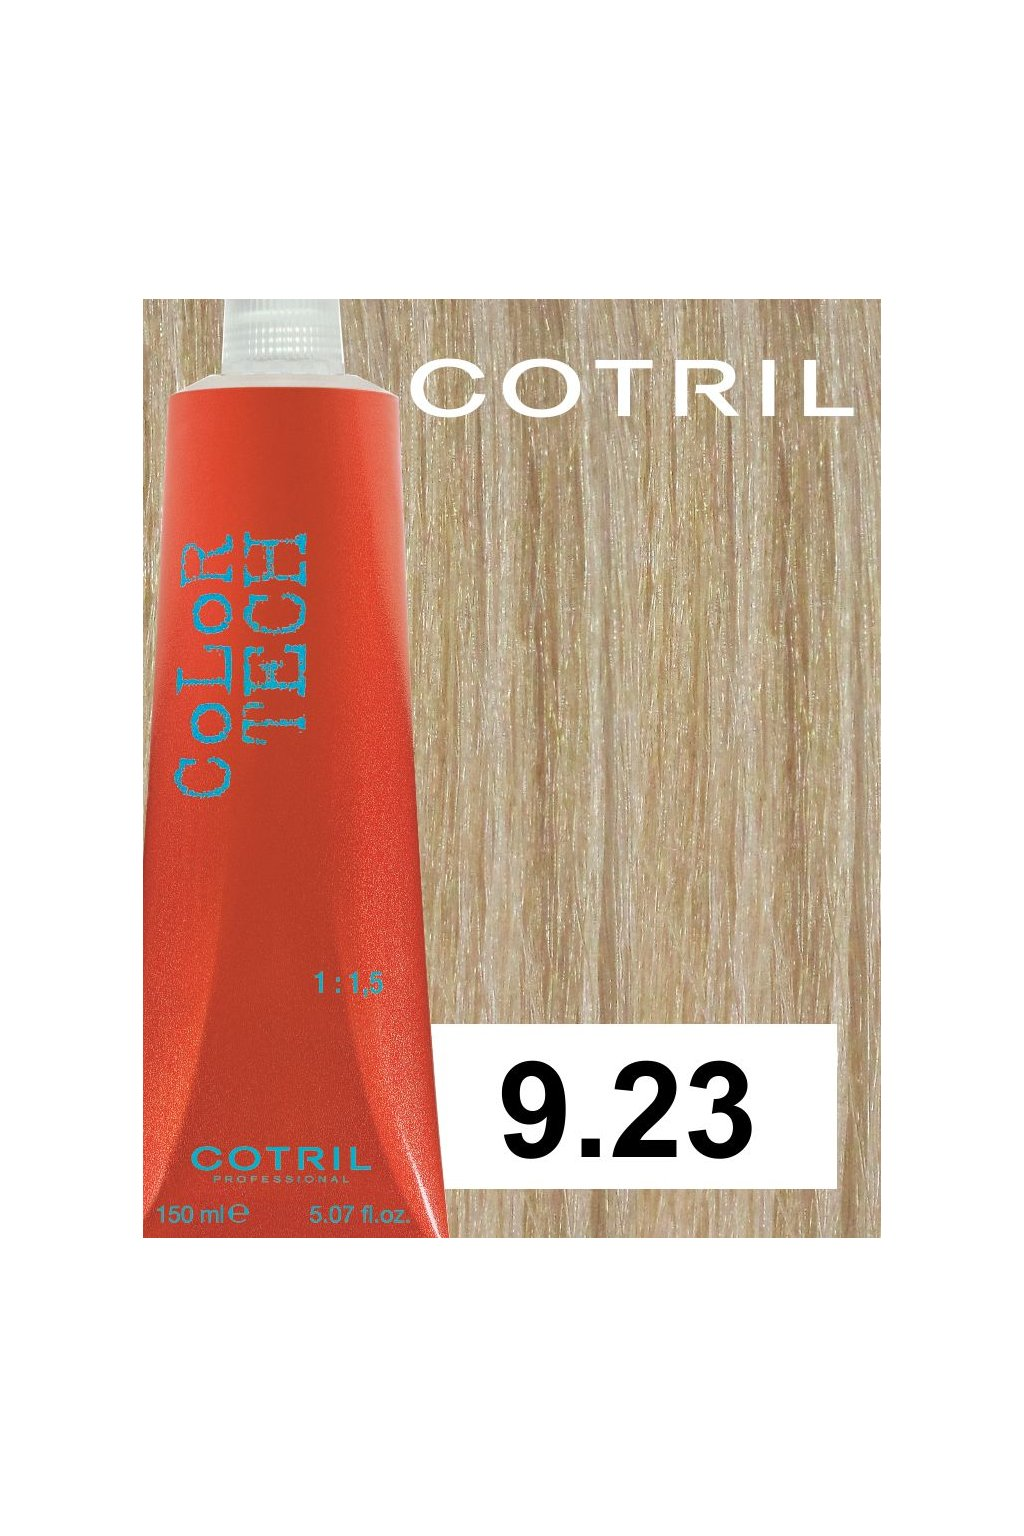 9 23 ct cotril